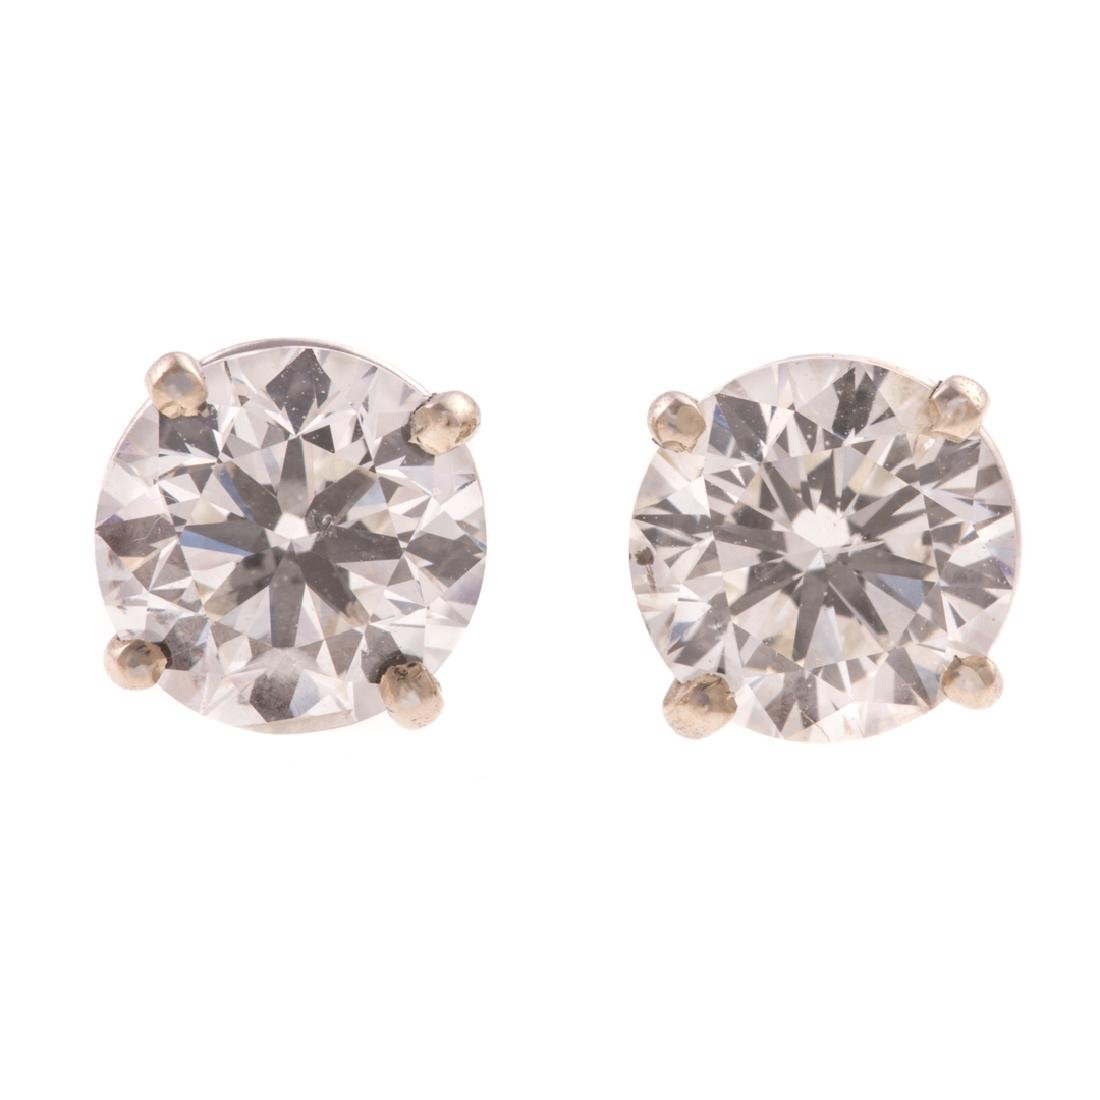 A Pair of 2.01 ct. Diamond Studs in 14K White Gold